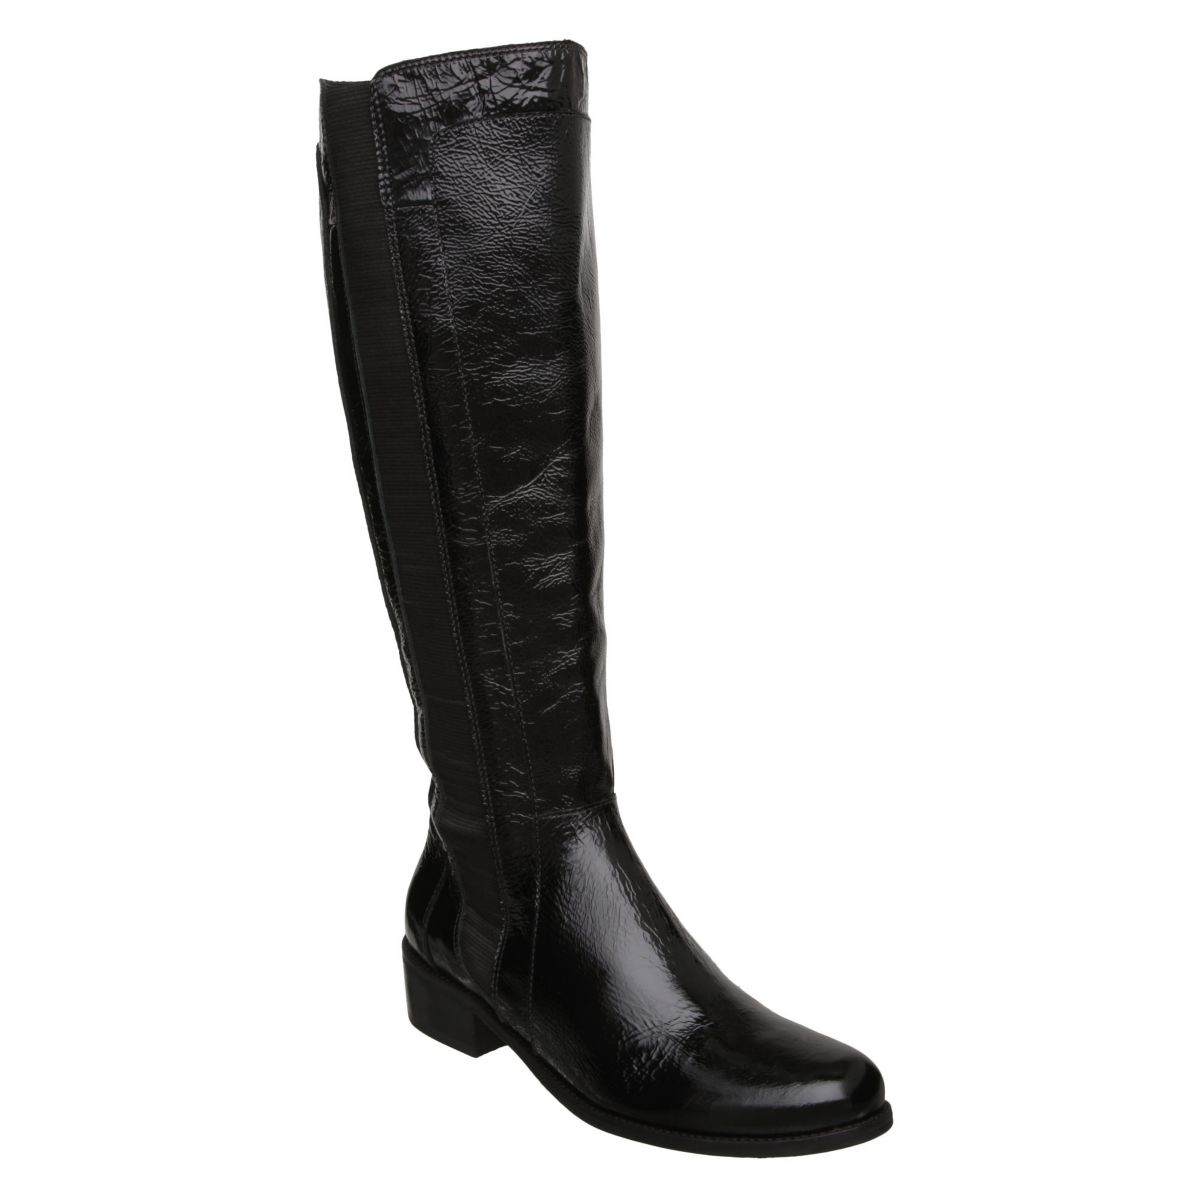 DUNE-THORPE-WOMENS-BLACK-LEATHER-ELASTICATED-PATENT-RIDING-BOOTS-SHOES-SIZE-3-8